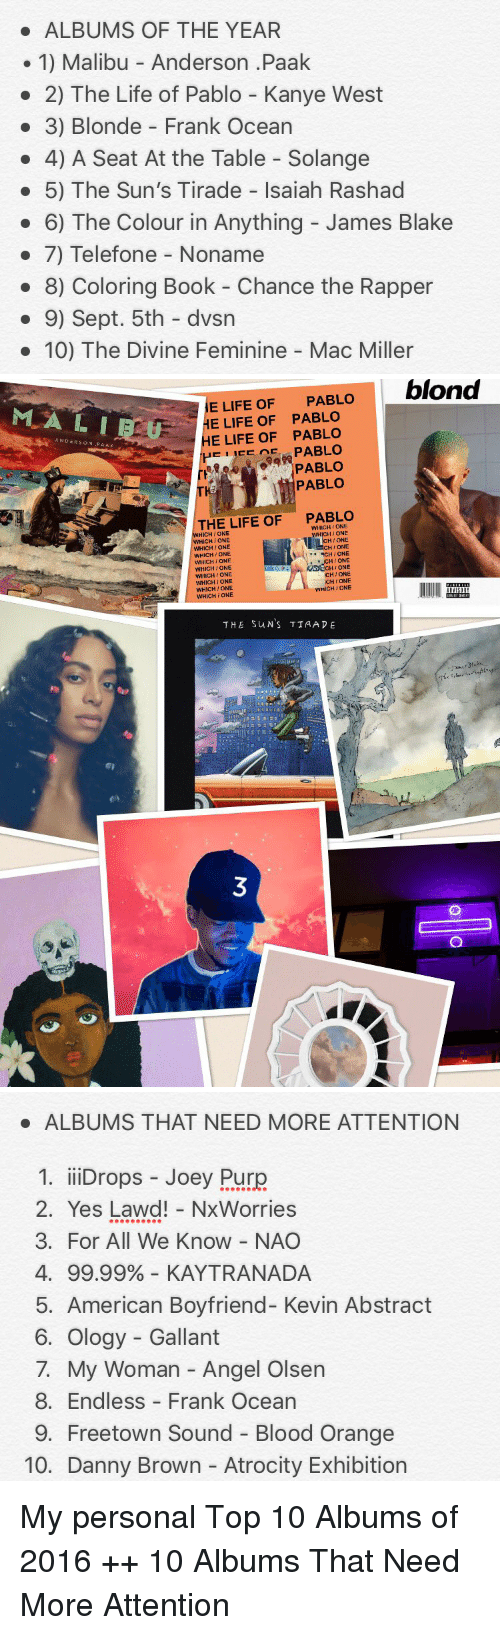 malibu: ALBUMS OF THE YEAR  1) Malibu Anderson .Paak  2) The Life of Pablo Kanye West  3) Blonde Frank Ocean  4) A Seat At the Table Solange  5) The Sun's Tirade Isaiah Rashad  6) The Colour in Anything James Blake  7) Telefone No  8) Coloring Book Chance the Rapper  9) Sept. 5th dvsn  10) The Divine Feminine Mac Miller   blond  MAL I UE HE LIFE OF PABLO  E LIFE OF PABLO  AND  RSON PAAK  PABLO  HE CA PABLO  PABLO  THE LIFE OF  PABLO  HICH ONE  CH ONE.  WHICH JONE  -CH ONE  WHICH ONE.  ONE  HIONE  WHICH ONE  WHICH ONE.  ICH ONE  CH ONE  WHICH iONE  WHICH ONE  WHICH ONE  THE Su NS TTAA DE   ALBUMS THAT NEED MORE ATTENTION  1. iiiDrops Joey Purp  2. Yes Lawd! NxWorries  3. For All We Know NAO  4. 99.99% KAYTRANADA  5. American Boyfriend- Kevin Abstract  6. Ology Gallant  7. My Woman Angel Olsen  8. Endless Frank Ocean  9. Freetown Sound Blood Orange  10. Danny Brown Atrocity Exhibition My personal Top 10 Albums of 2016 ++ 10 Albums That Need More Attention